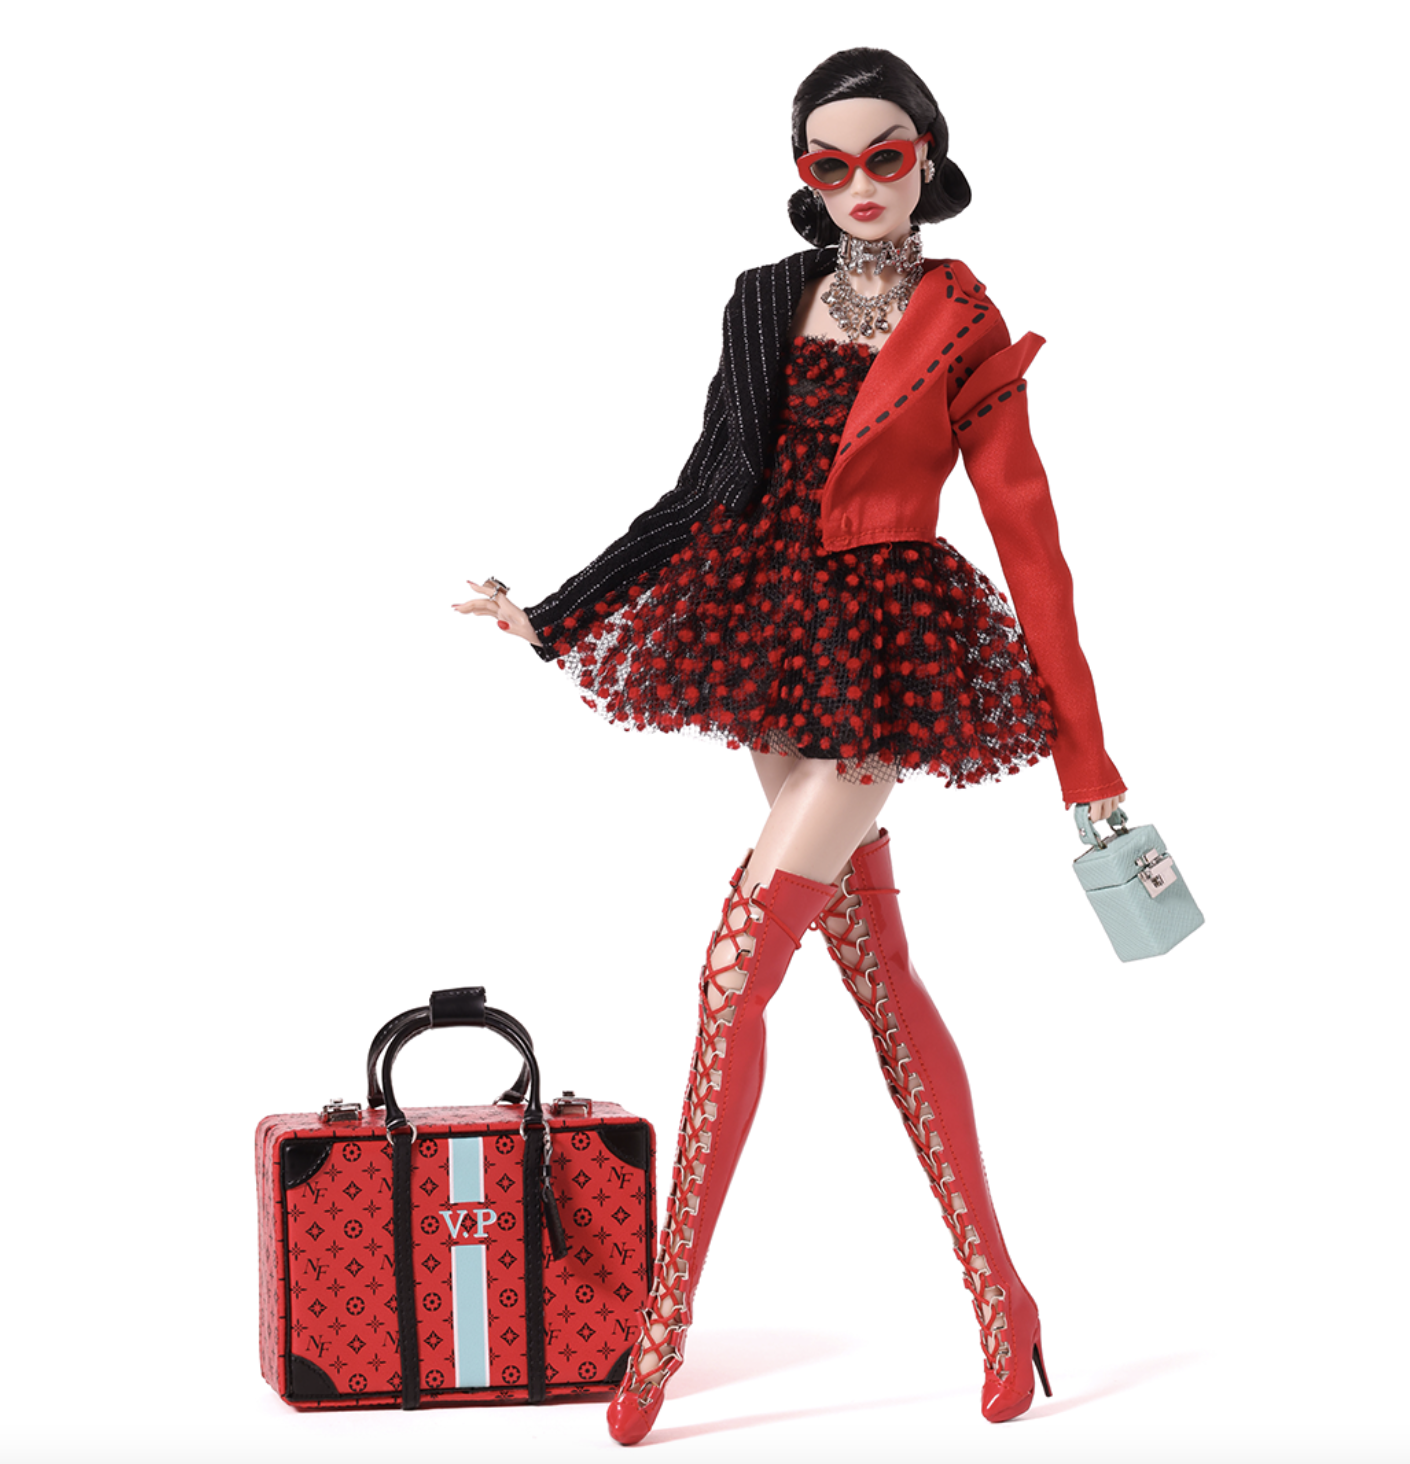 2020 Integrity Toys: W CLUB EXCLUSIVE Nu Face Fashionable Legacy Violaine Perrin Gift Set PRE-ORDER